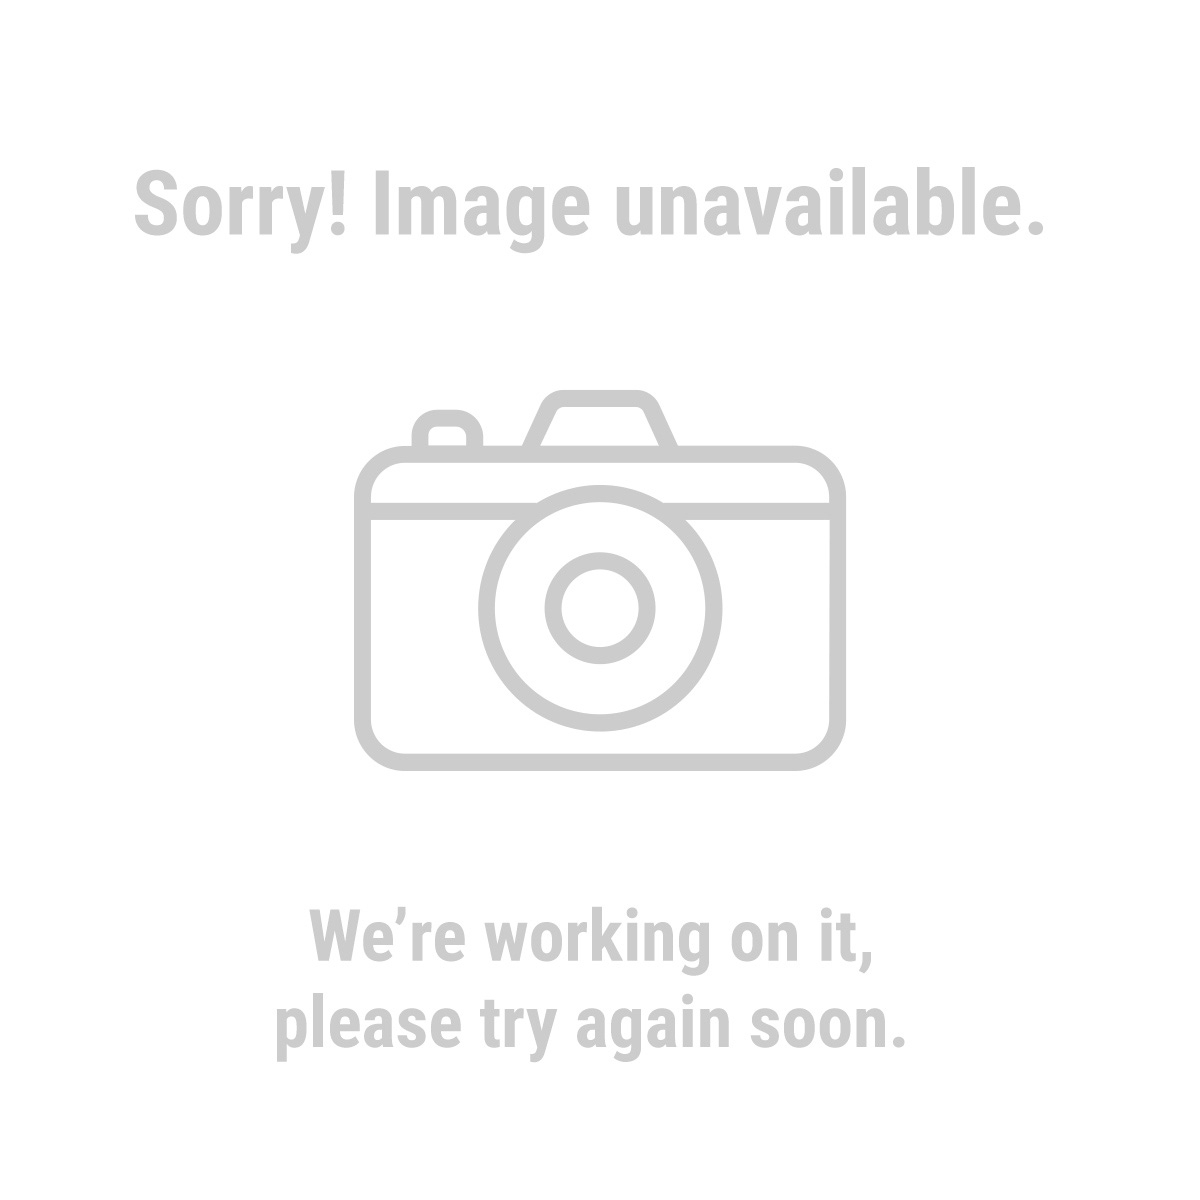 Warrior 69017 4 Piece Large Diameter Spade Bit Set